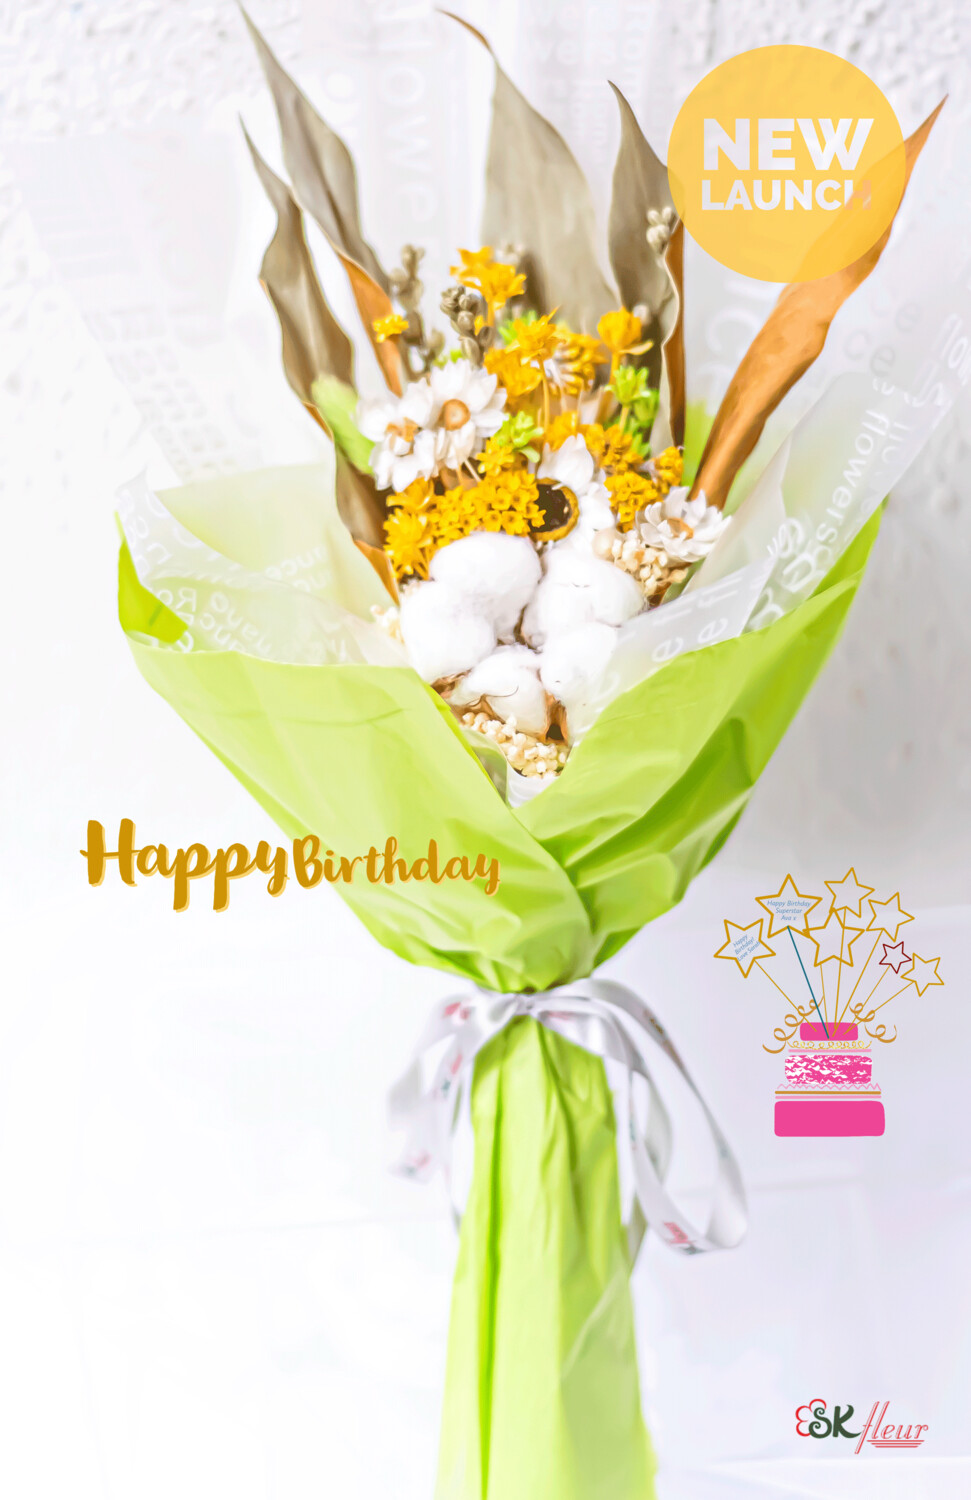 PETITE SIZE DRIED FLOWER BOUQUET - YELLOW & GREEN